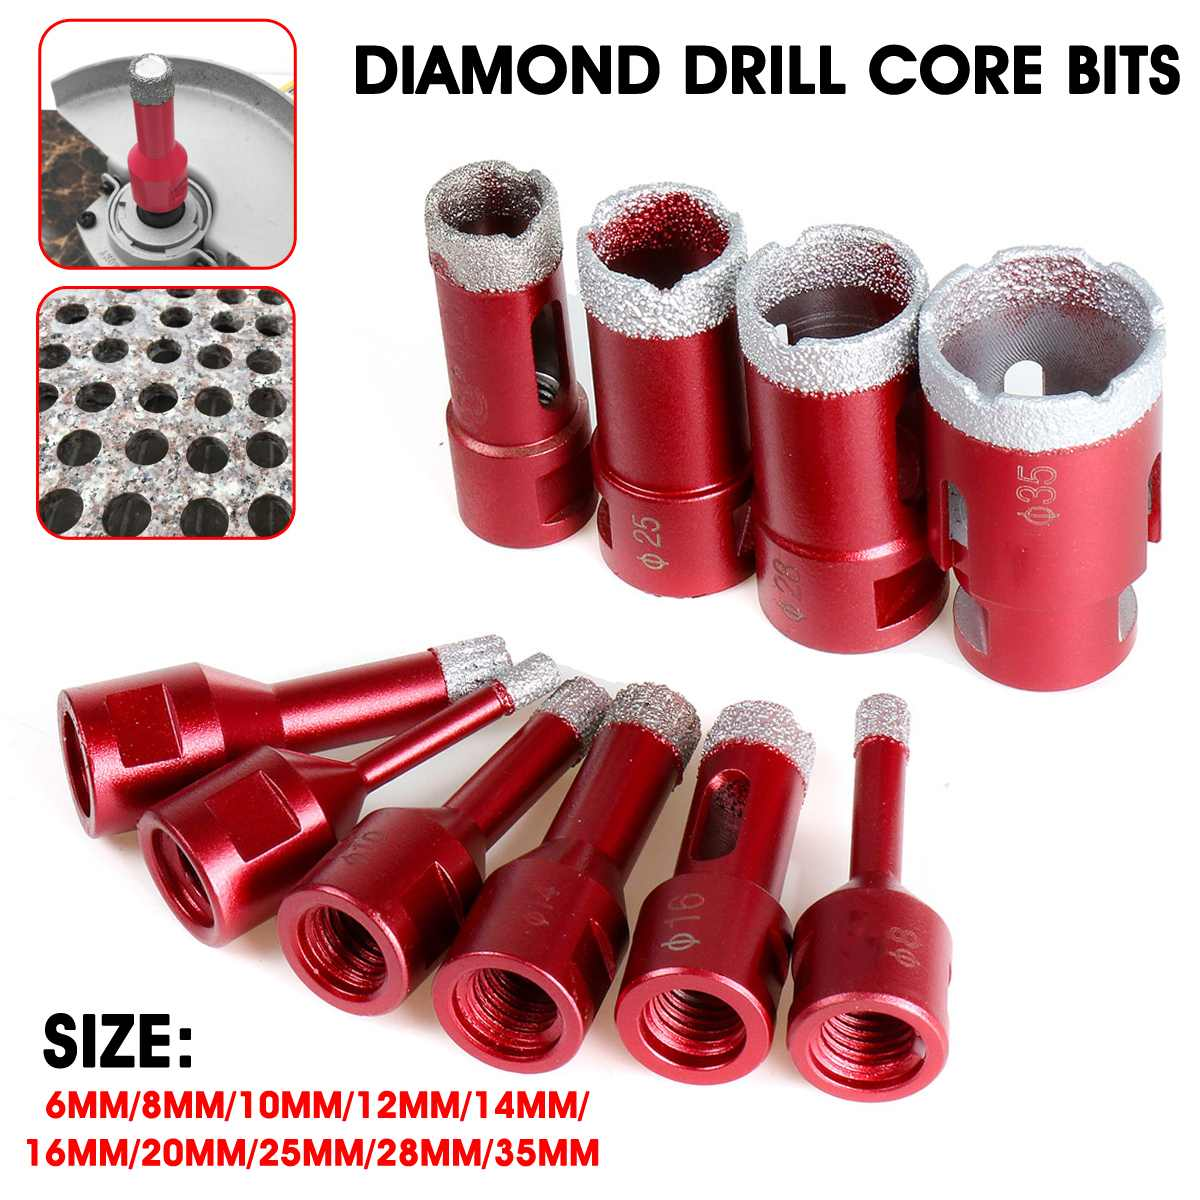 Becornce 1Pc 6mm-35mm M14 Marble Opener Diamond Drill Core Bits Drilling Hole Saw Bit Tools For Tile Marble Granite Brick Stone